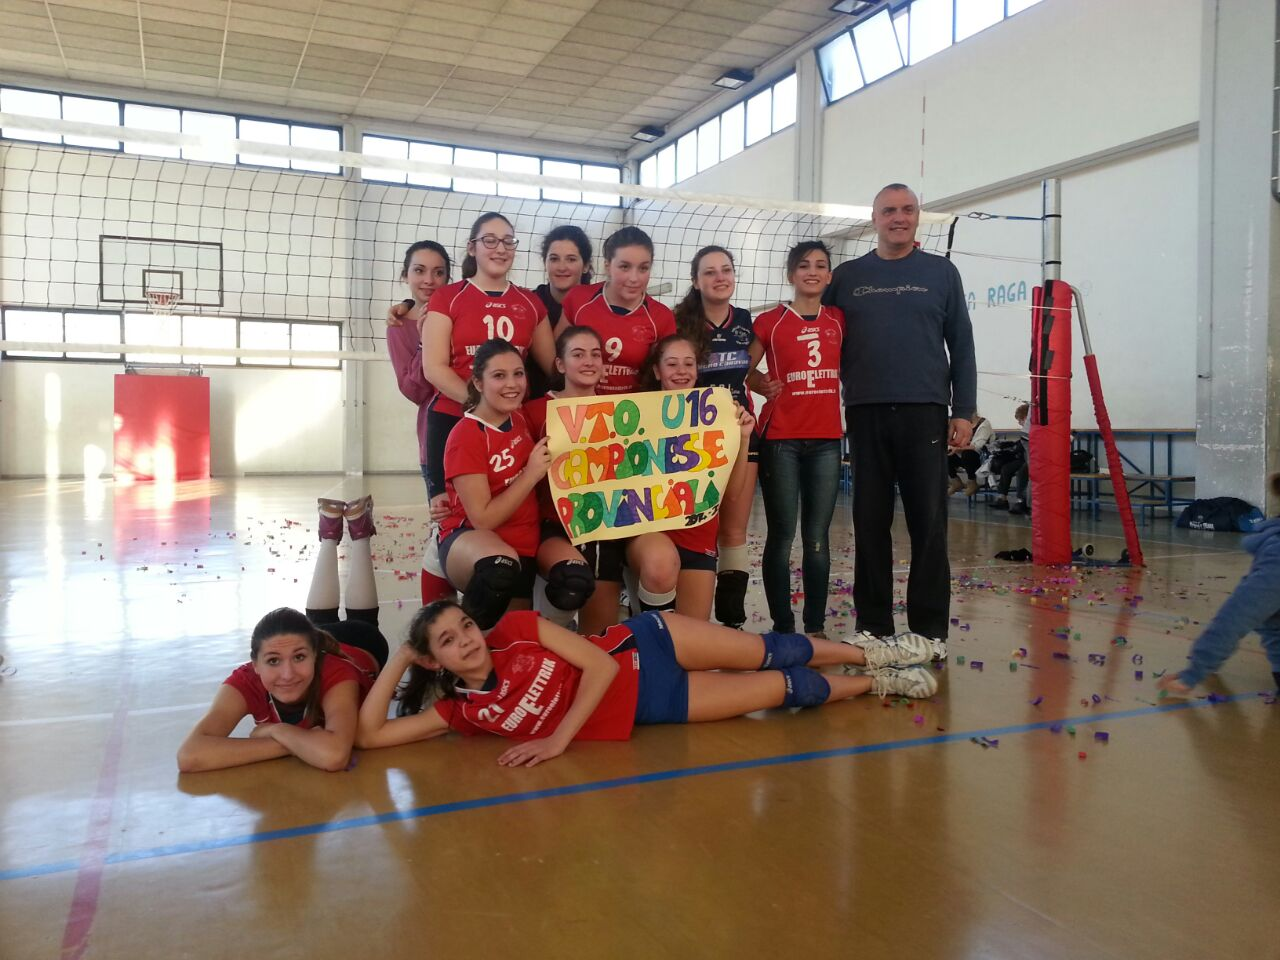 BBS CONSULTING Volley Team Orvieto campionesse provinciali U16